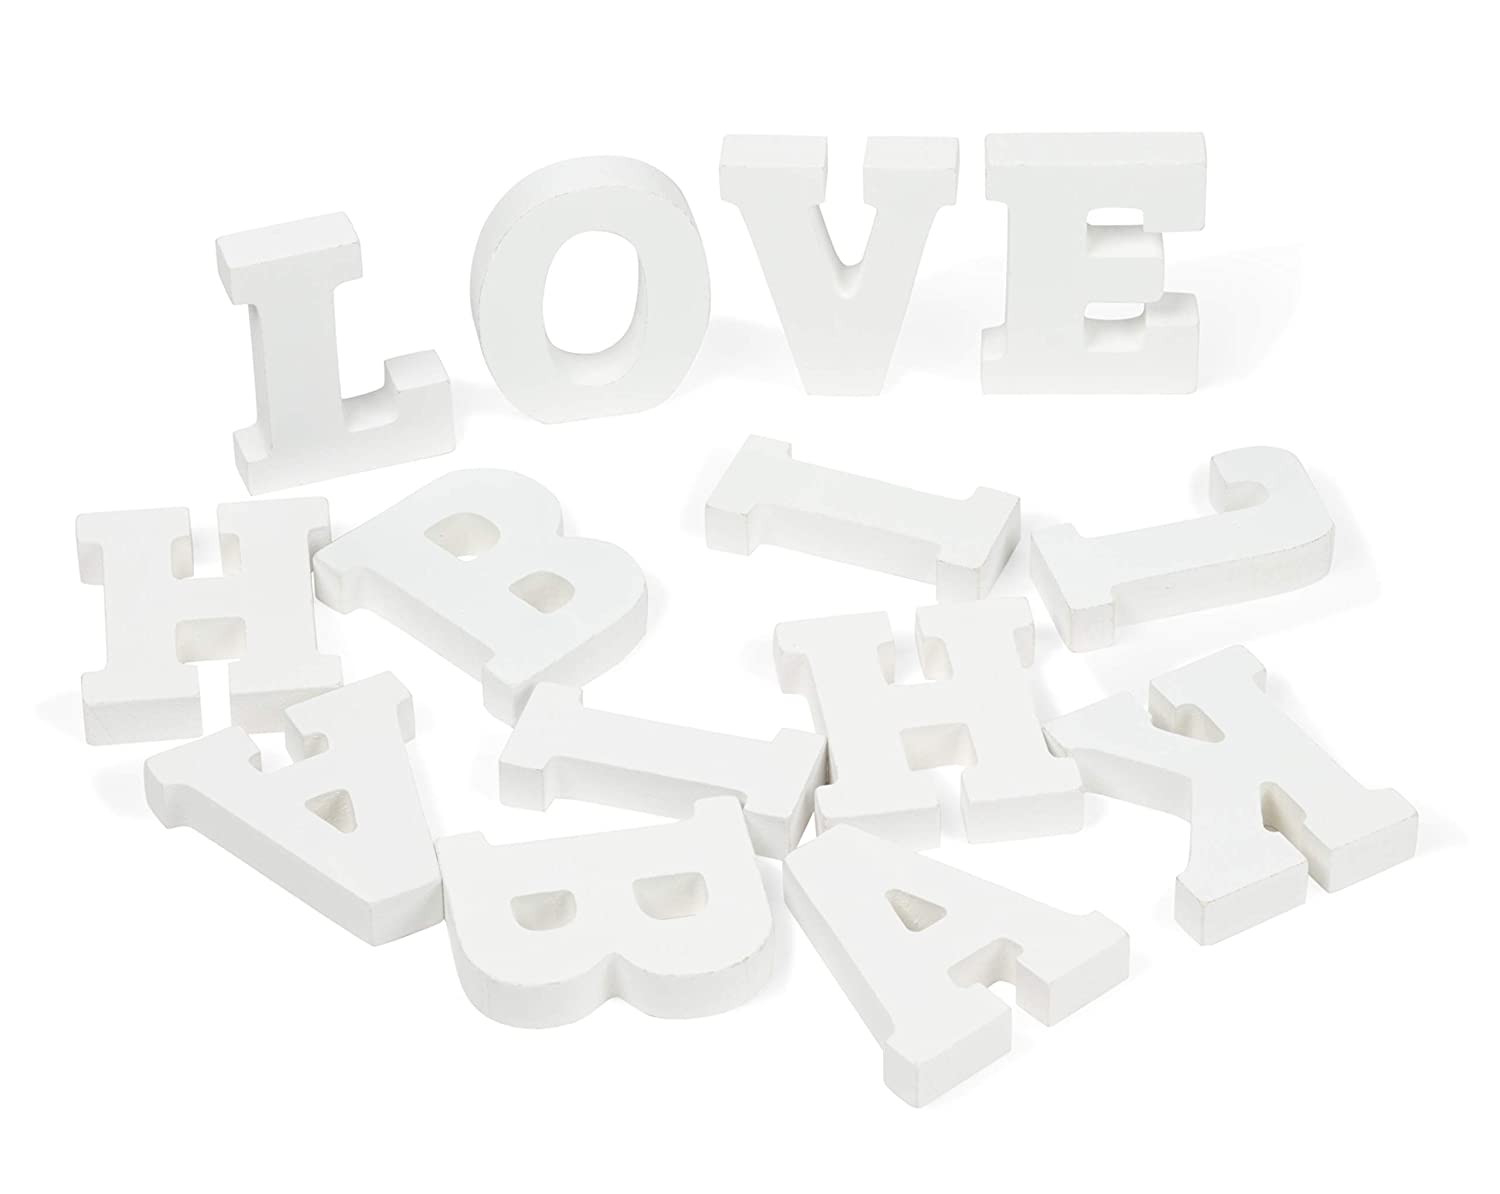 Genie Crafts White Wood Letters - 54-Piece Standing Wooden Alphabet and 2 Symbols, A - Z Marquee Letters, 1.38 x 3.13 x 0.6-Inch 3D Decor for Wedding, Birthday, Party, Home